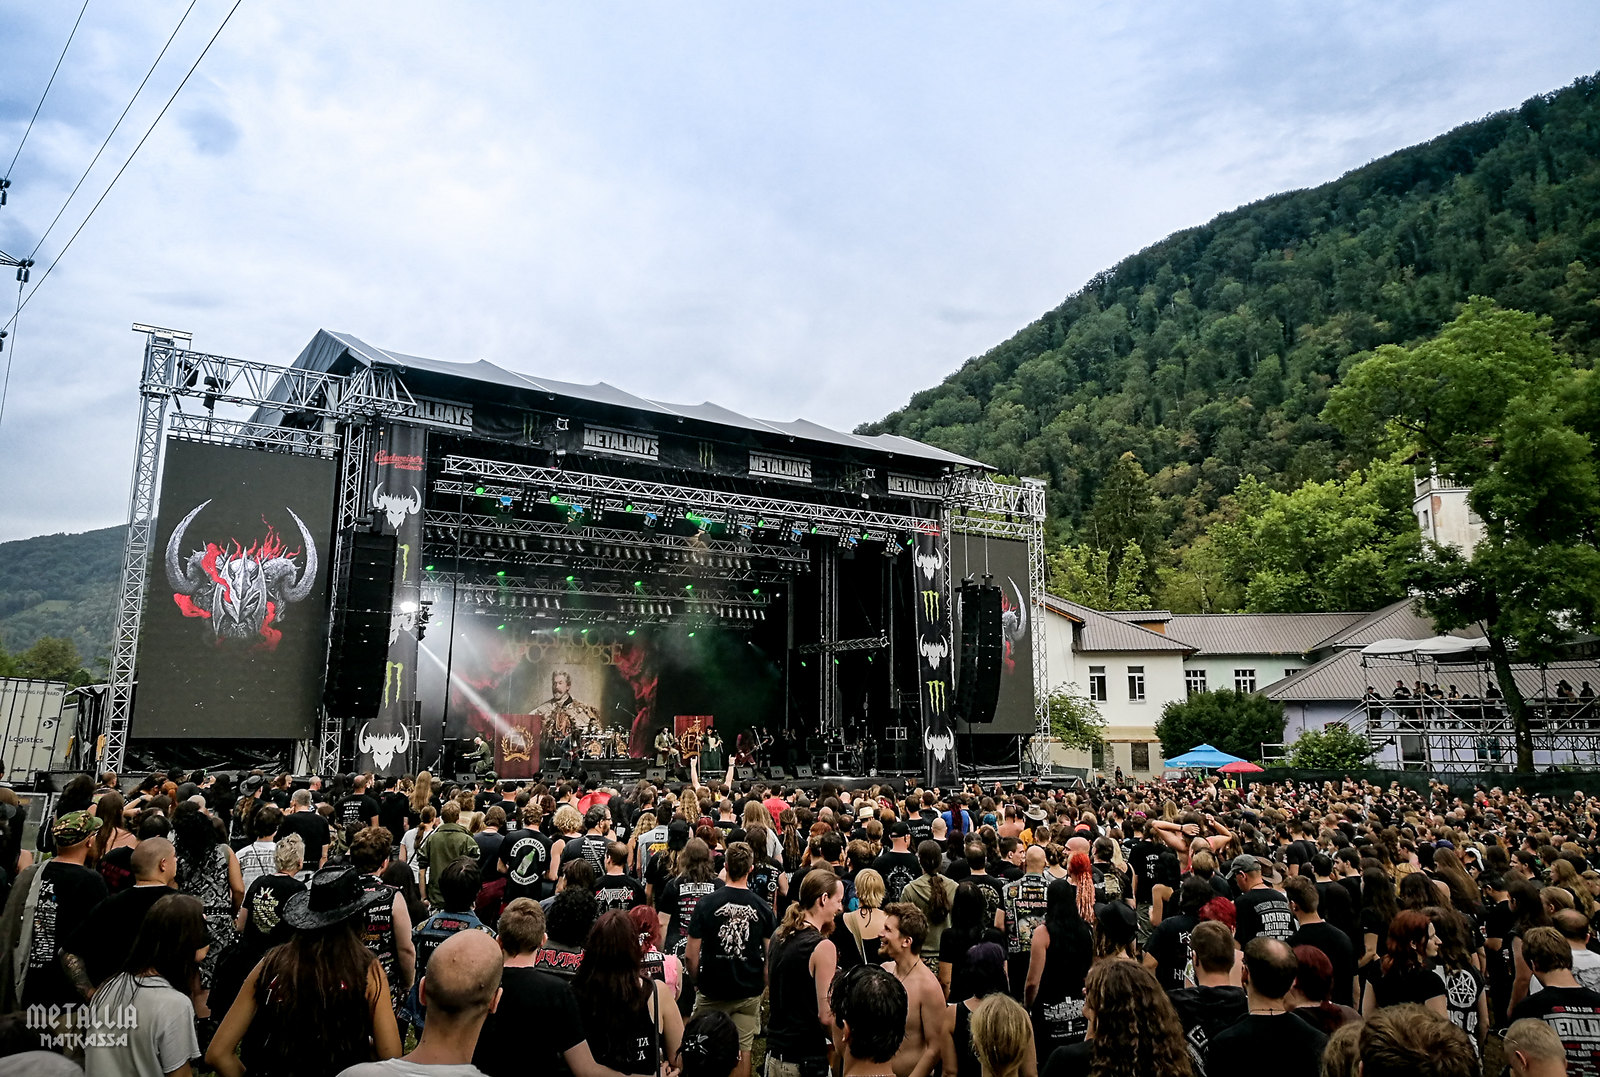 metaldays 2016, metaldays, metalcamp, metal festival, tolmin, metaldays main stage